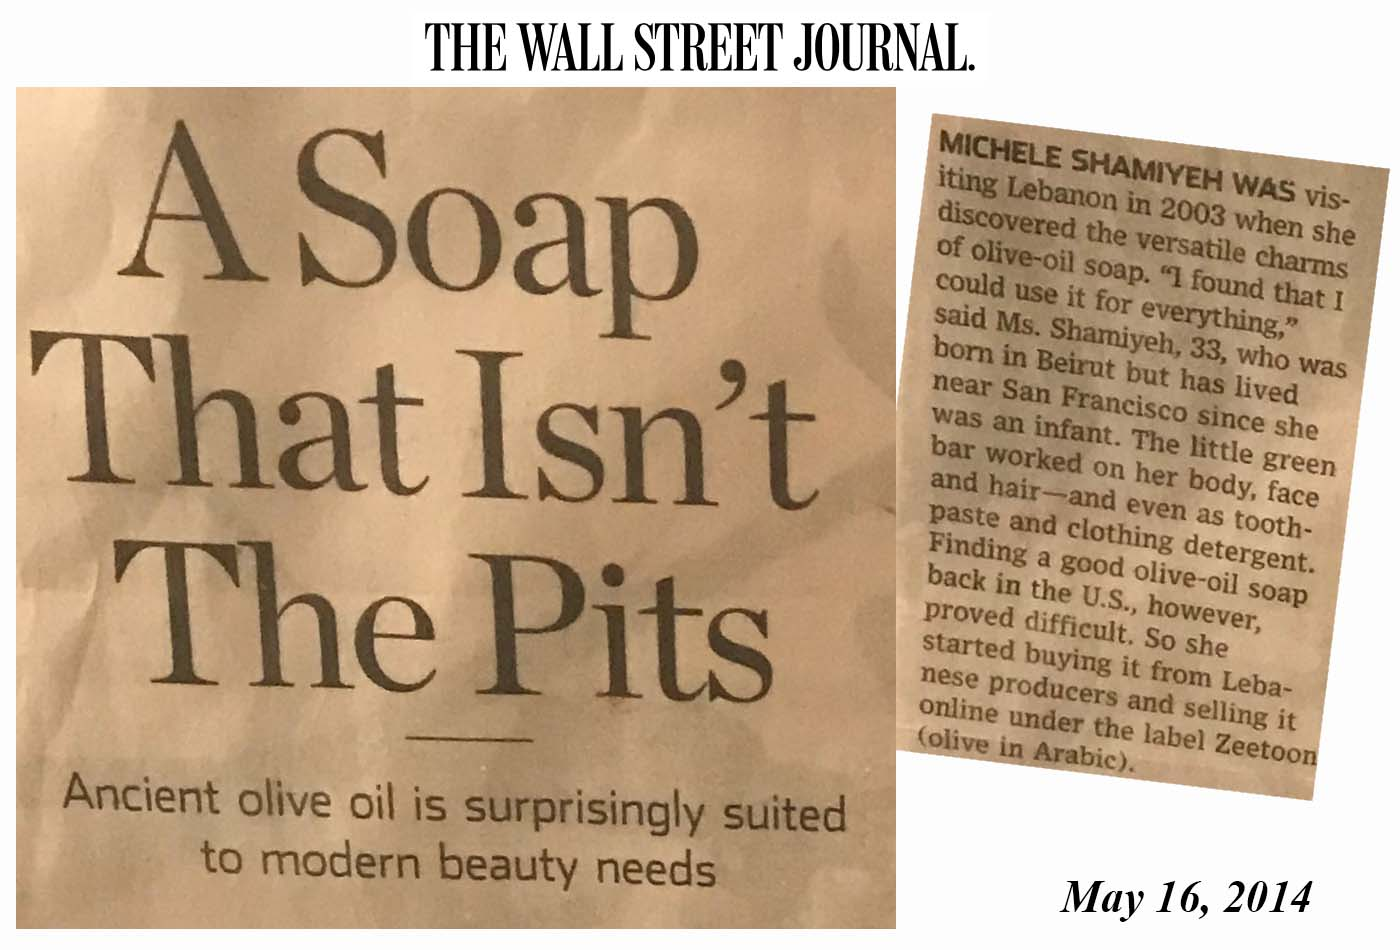 Zeetoon 100% Olive Oil Soap was featured in the Wall Street Journal!